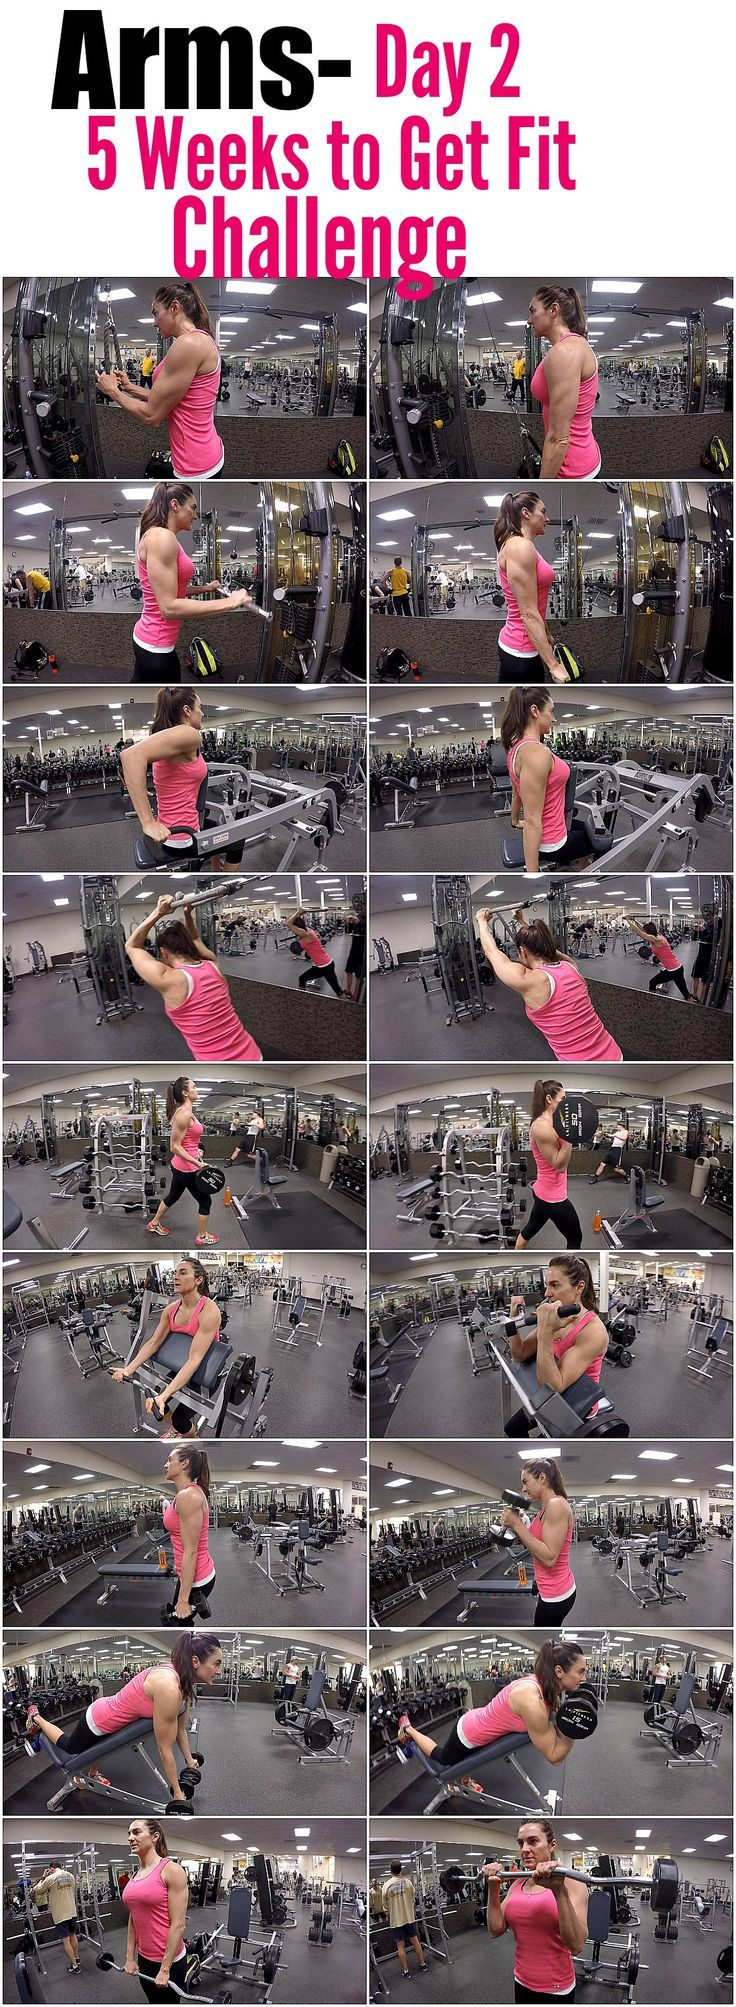 See more here ► https://www.youtube.com/watch?v=xctKmmiYuKo Tags: how to lose lots of weight in a week, 12 week weight loss plan, - 5 Weeks to Fit Challenge Day 2-ARMS